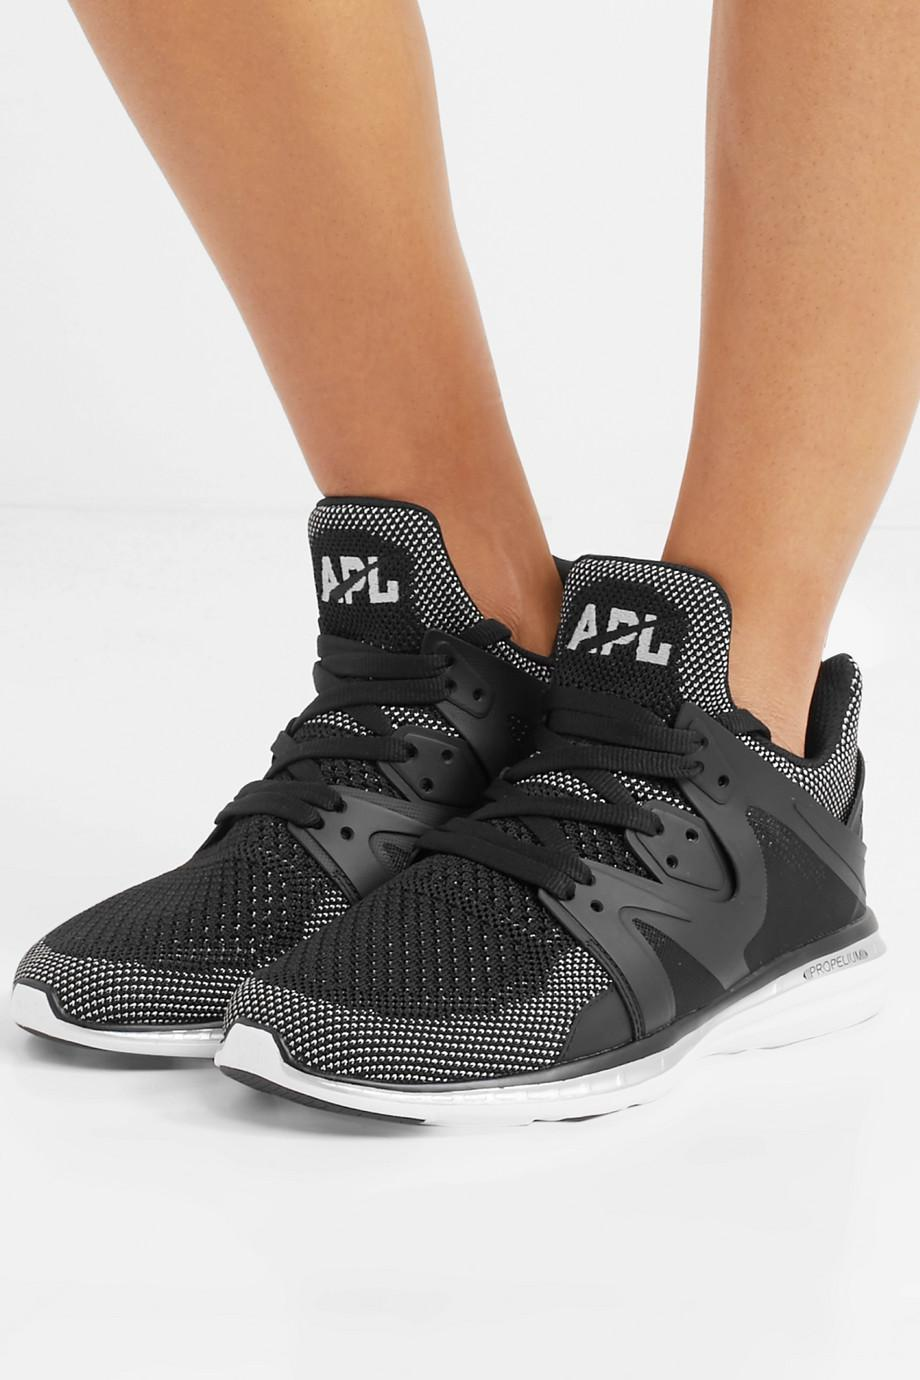 Athletic-Propulsion-Labs-APL-Ascend-1 +80 Most Inspiring Workout Shoes Ideas for Women